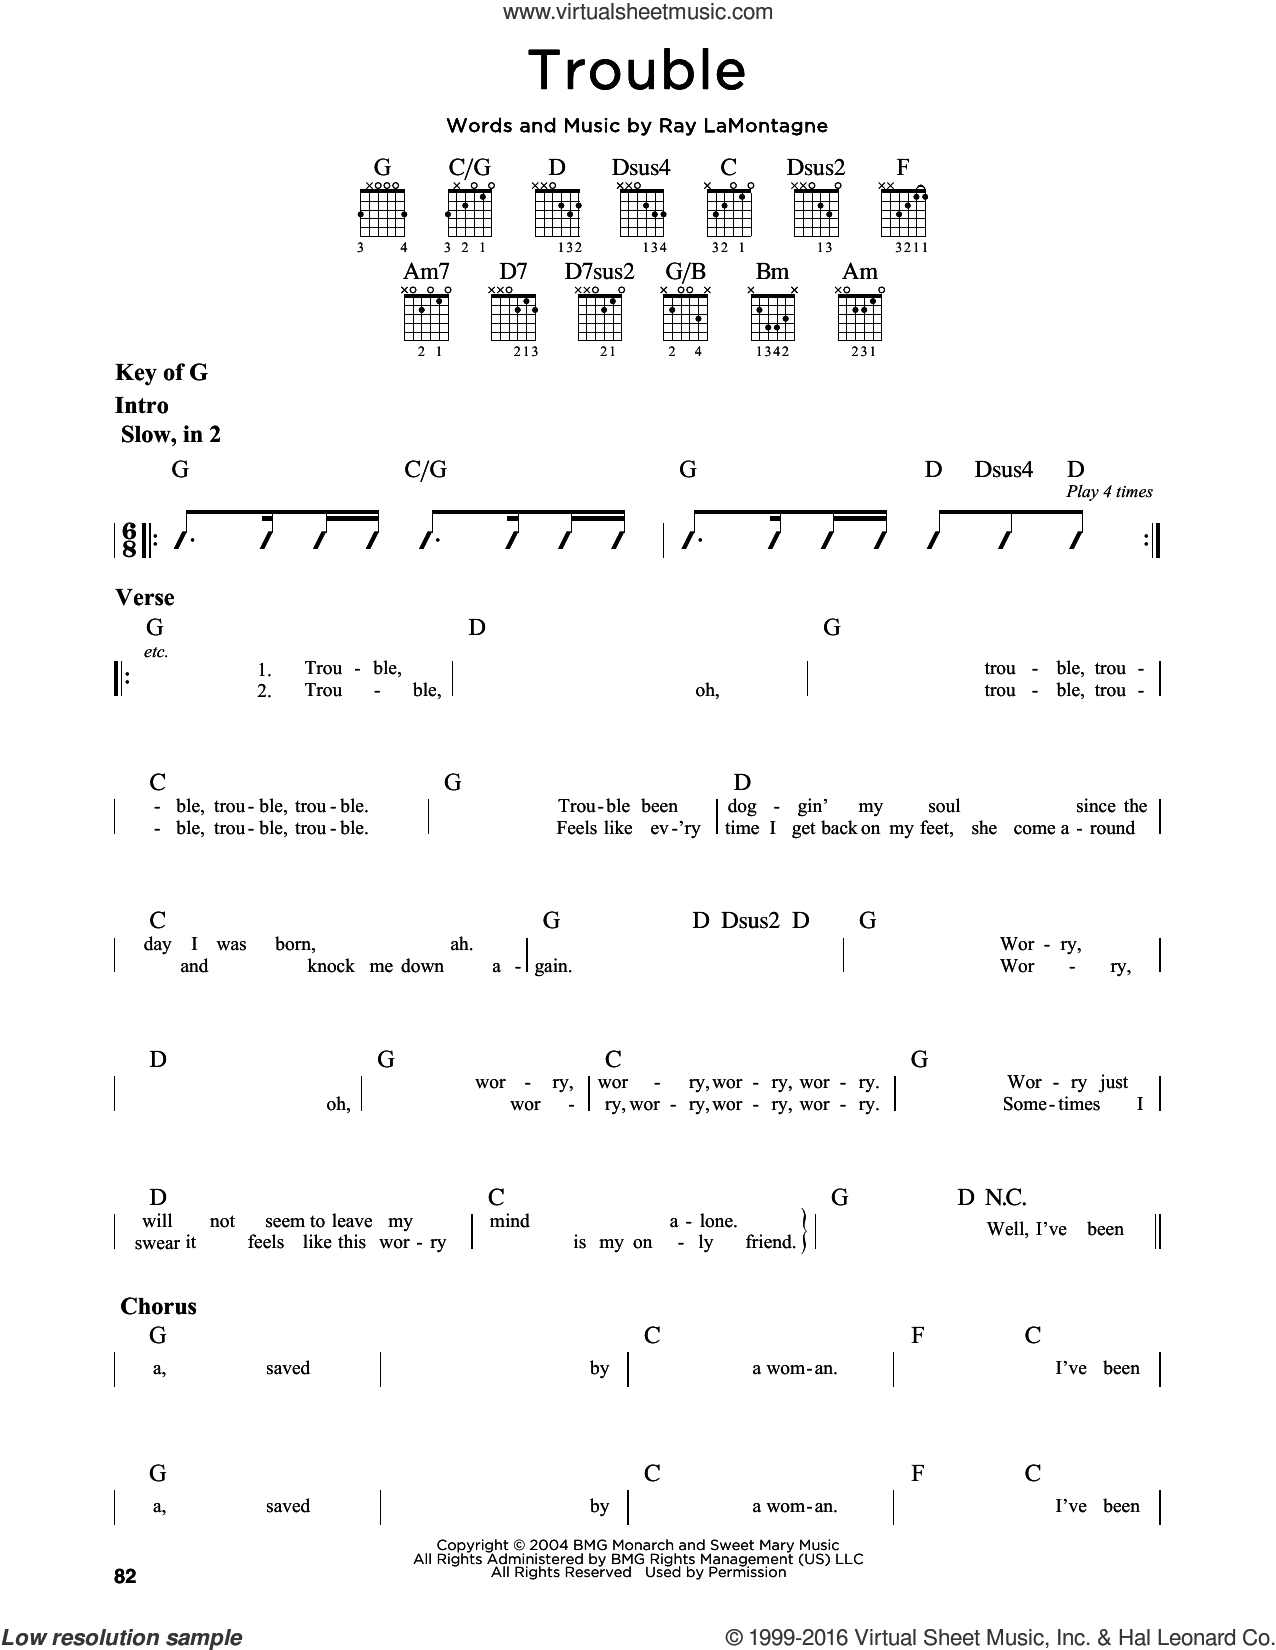 Trouble sheet music for guitar solo (lead sheet) by Ray LaMontagne